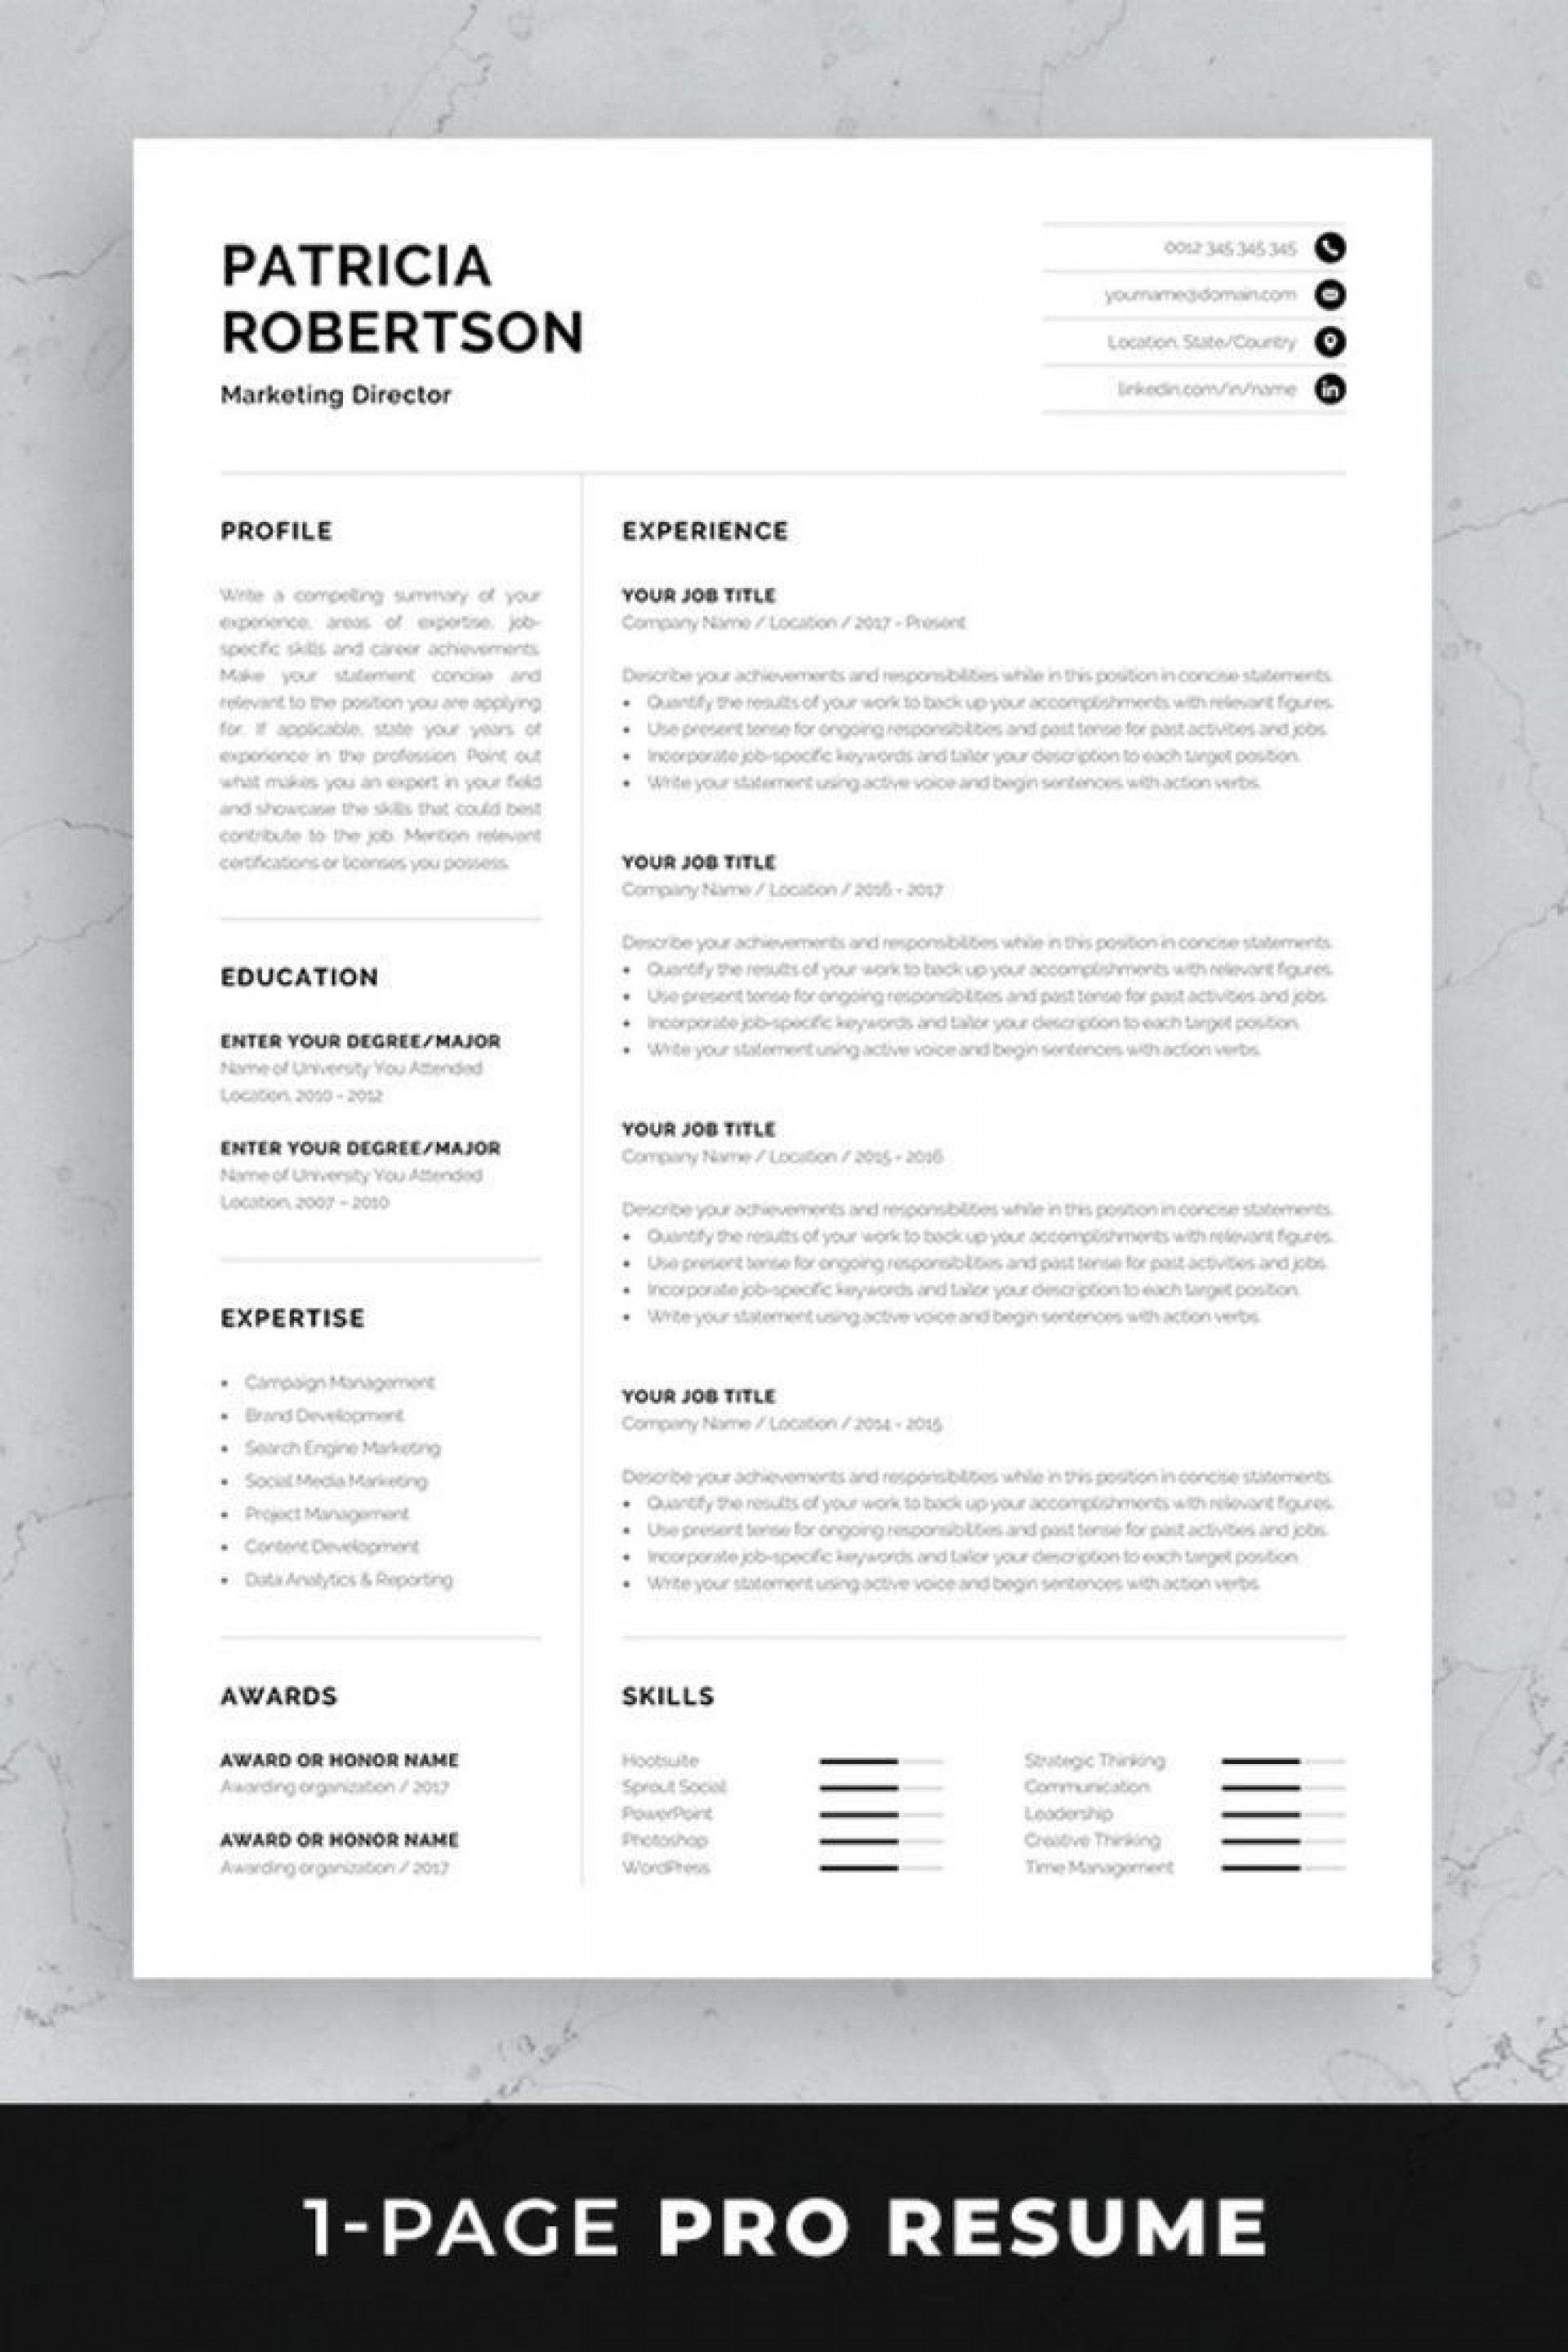 002 Impressive One Page Resume Template Photo  Templates Microsoft Word Free1920